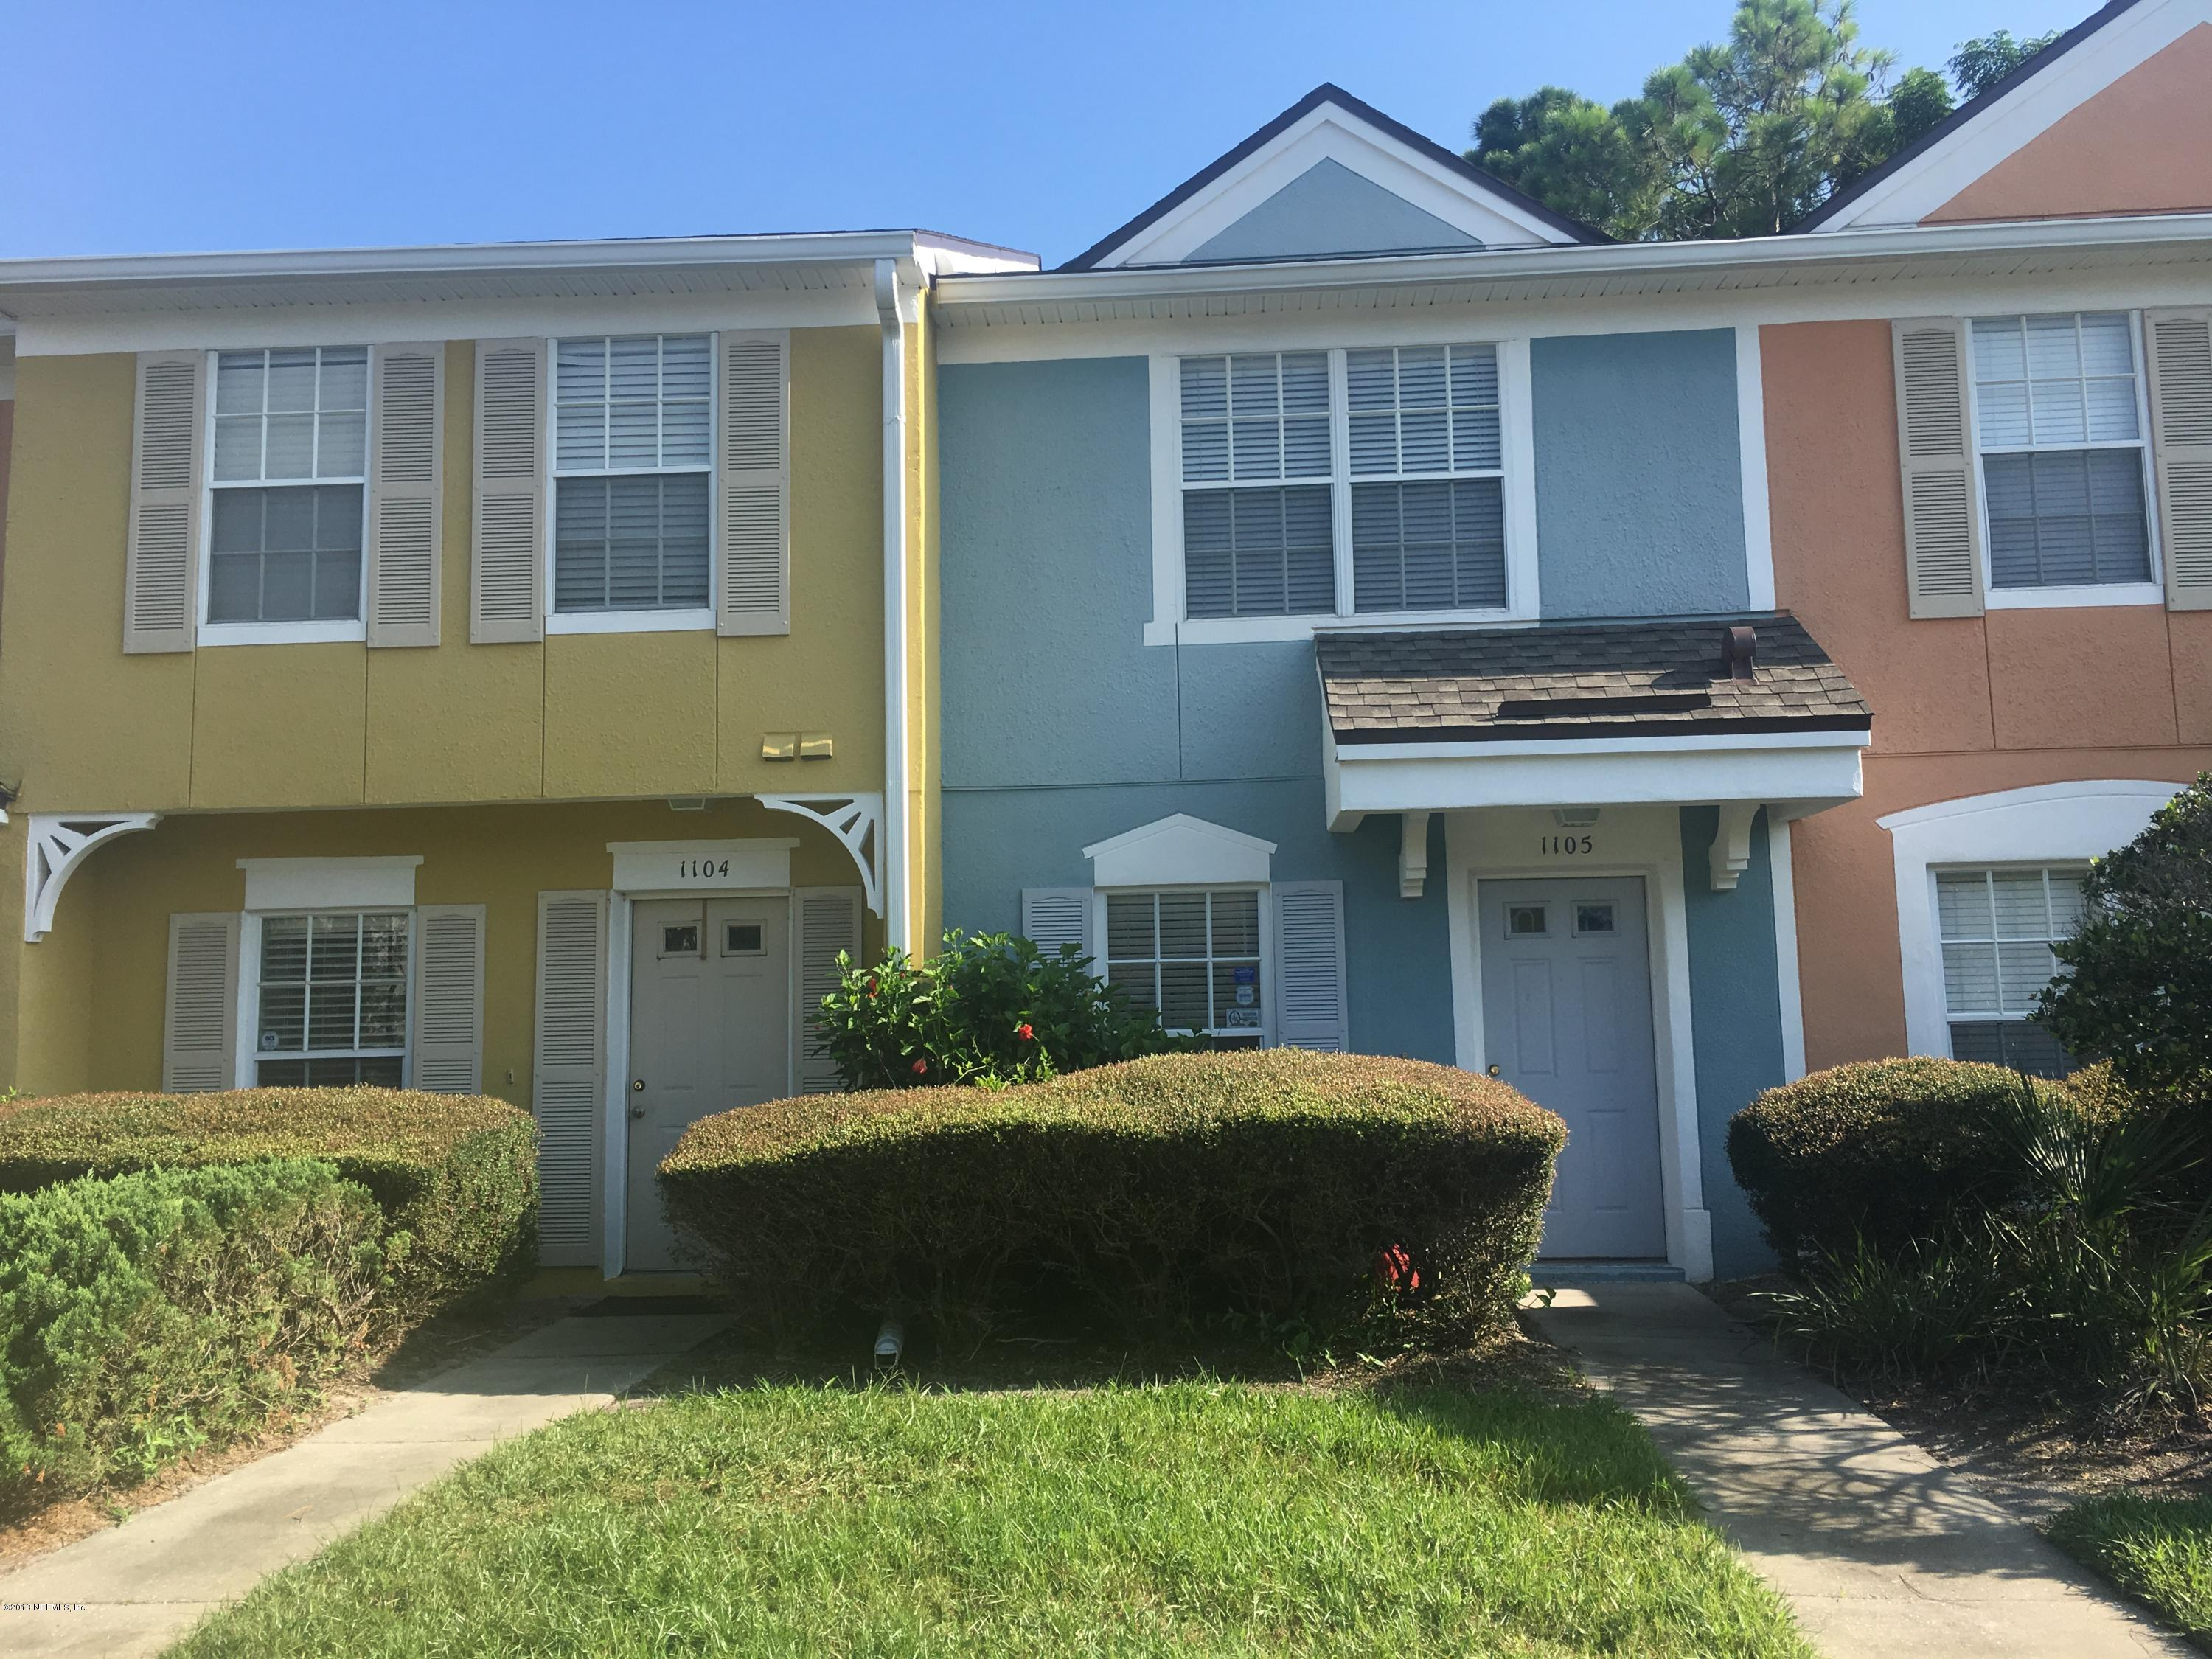 12311 KENSINGTON LAKES, JACKSONVILLE, FLORIDA 32246, 2 Bedrooms Bedrooms, ,1 BathroomBathrooms,Residential - condos/townhomes,For sale,KENSINGTON LAKES,960890